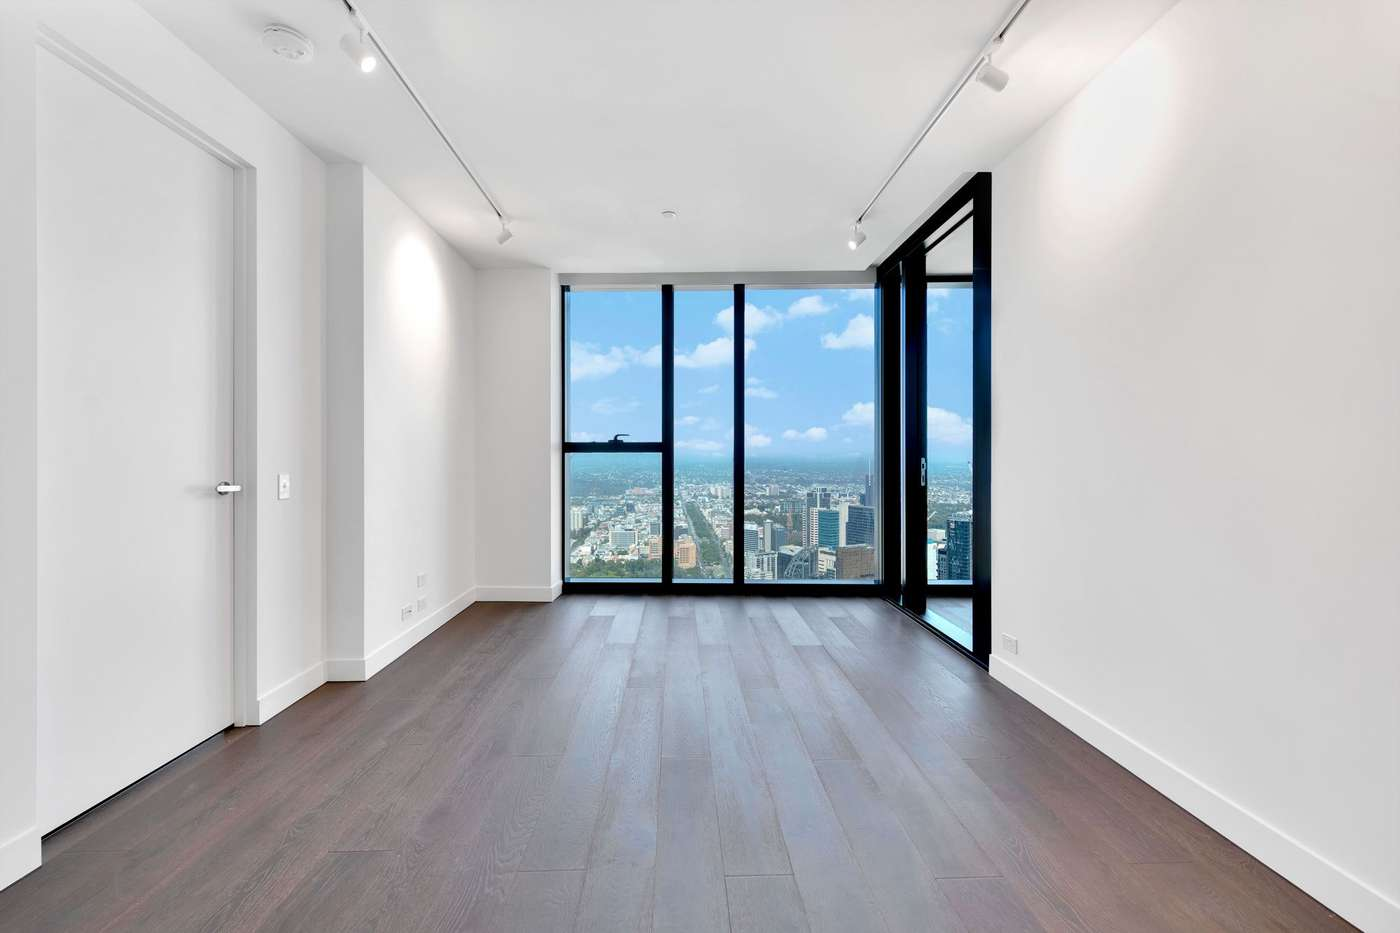 Main view of Homely apartment listing, 6713/160 VIctoria Street, Carlton, VIC 3053